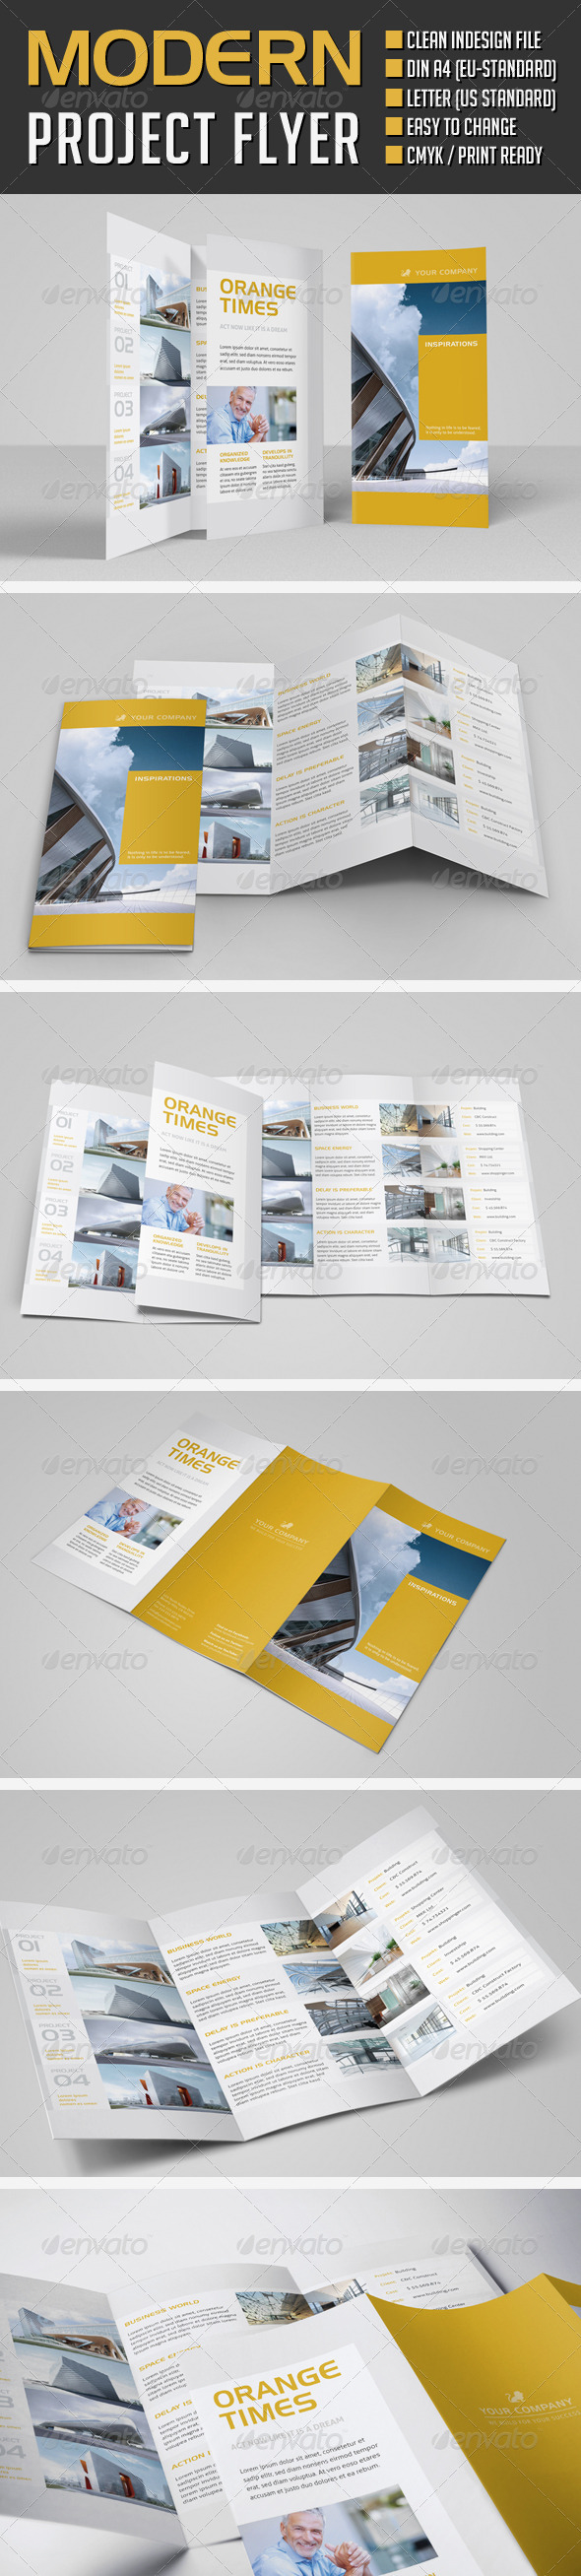 GraphicRiver Modern Project Trifold Flyer 8562945